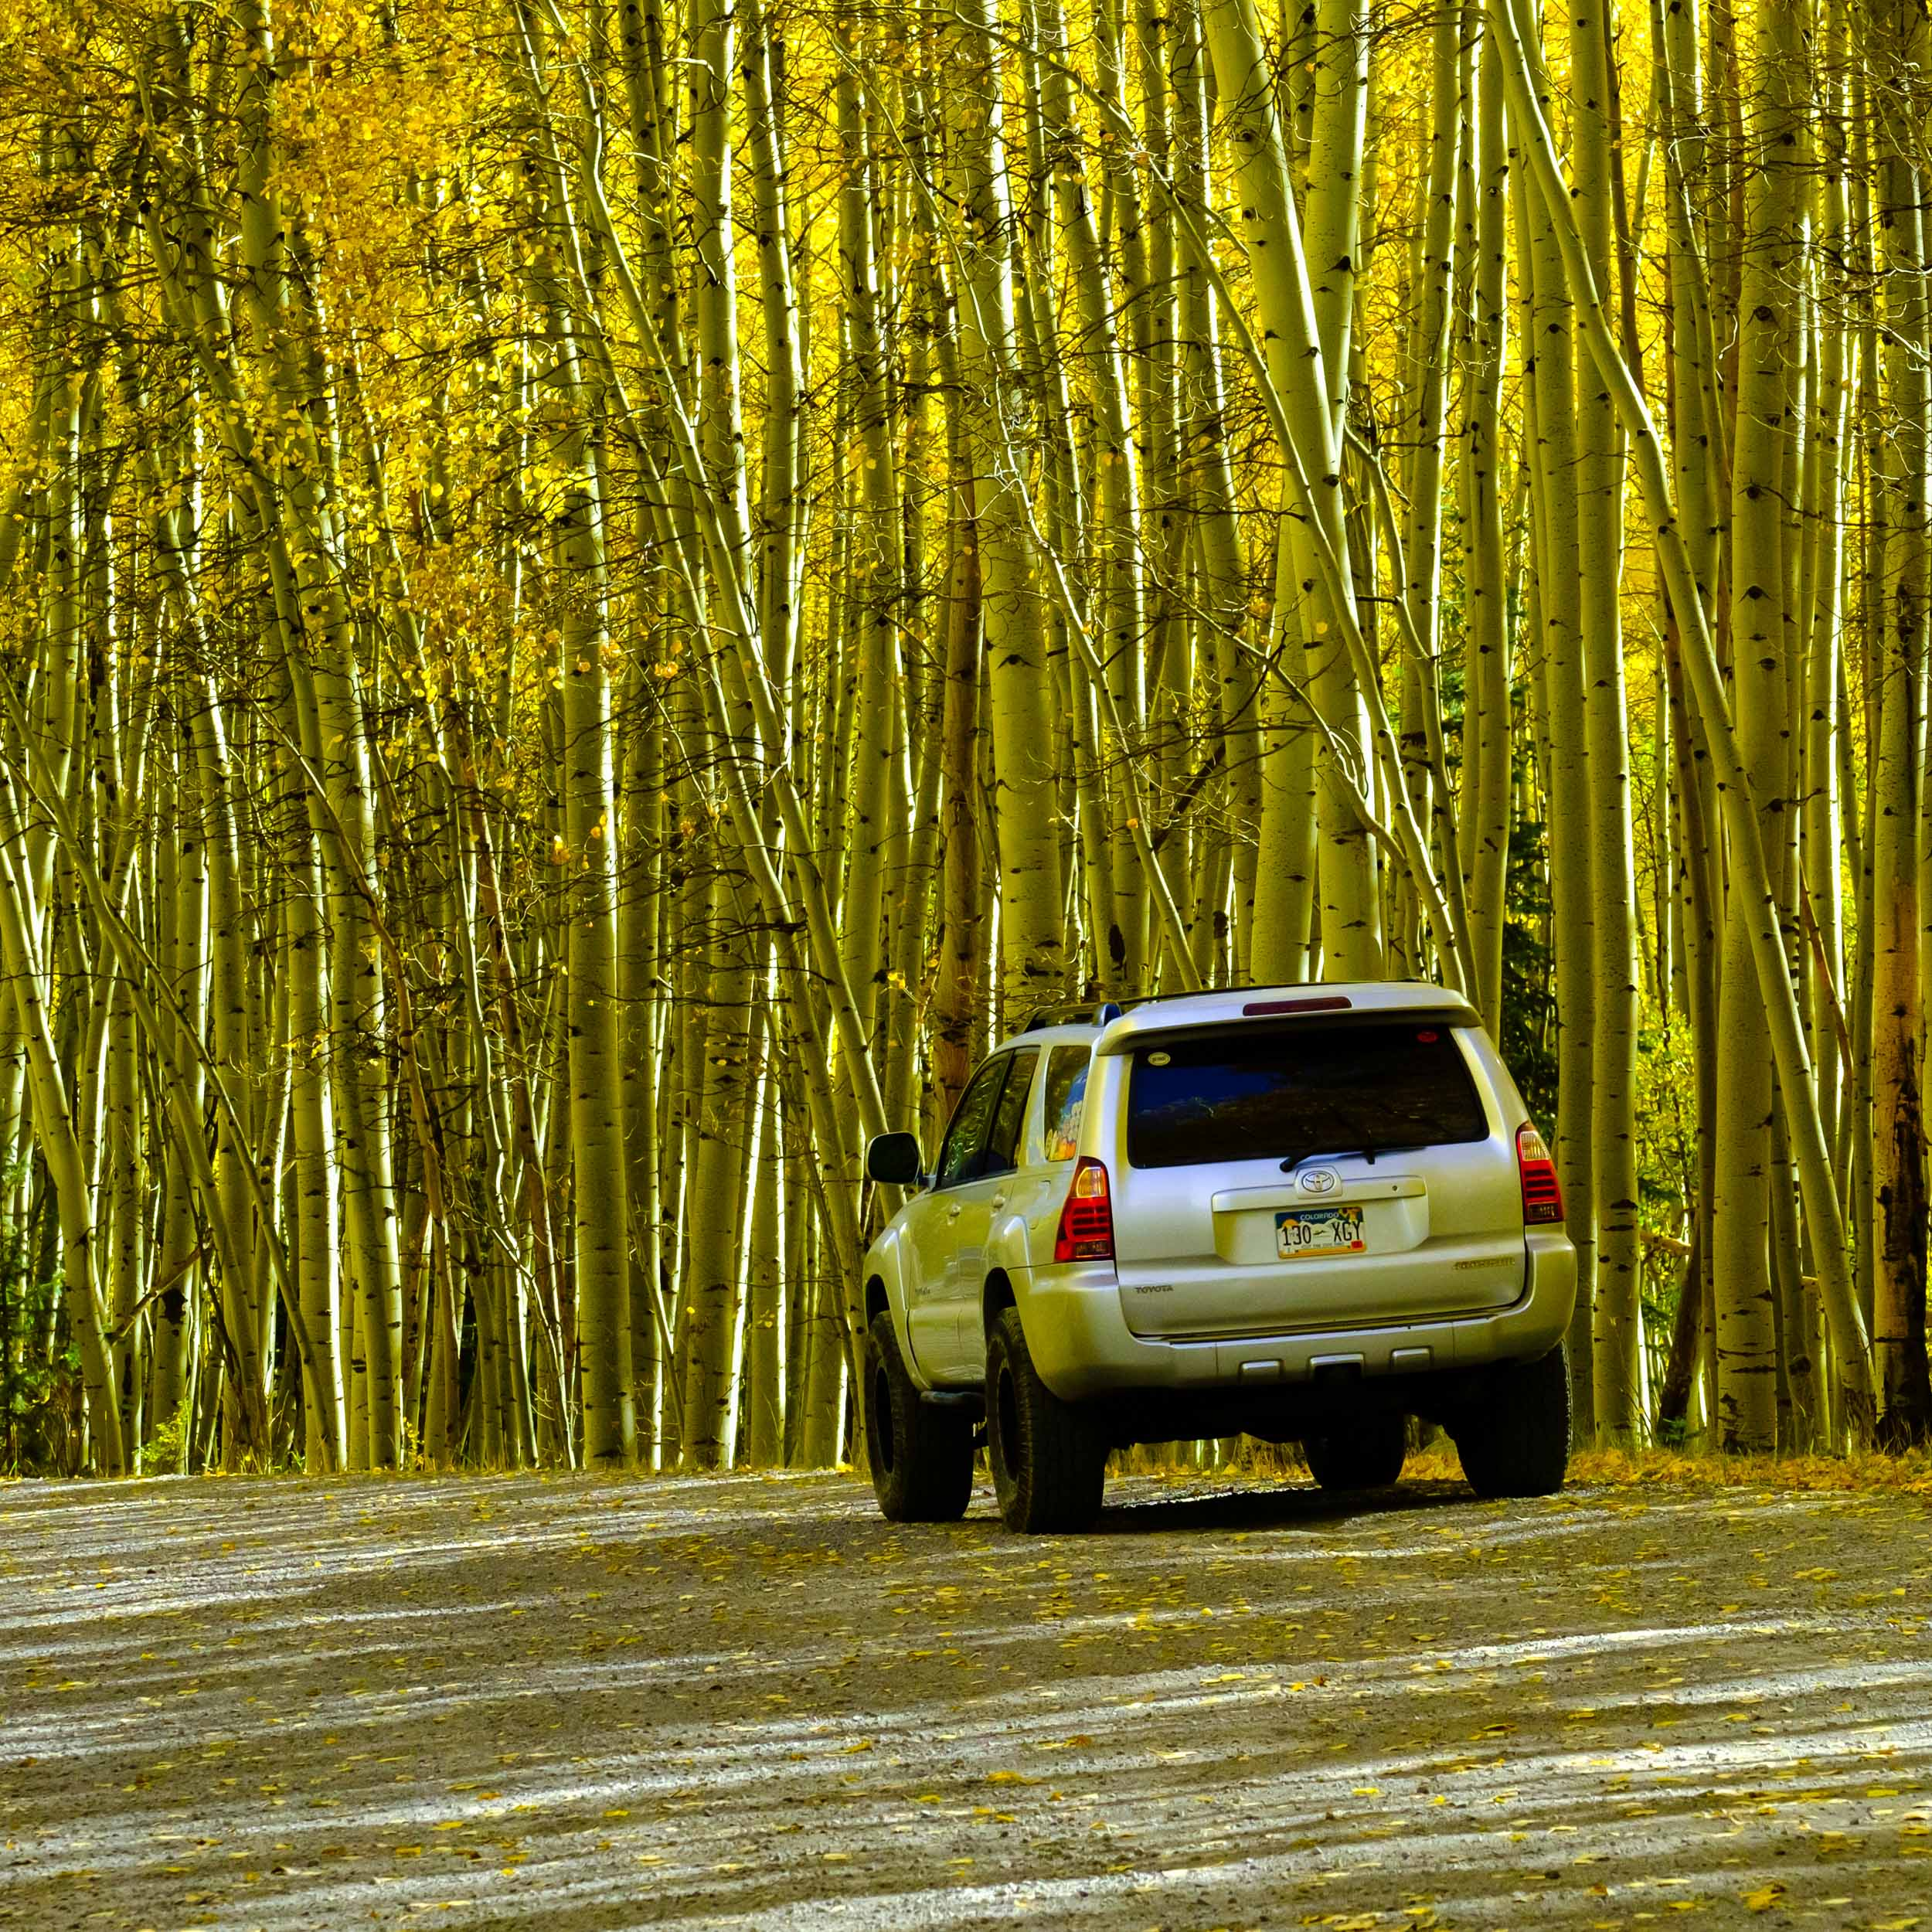 Shadows of Aspens hover over the Toyota 4Runner - Fuji XT2, XF 50-140mm f/2.8 @ 77.3mm